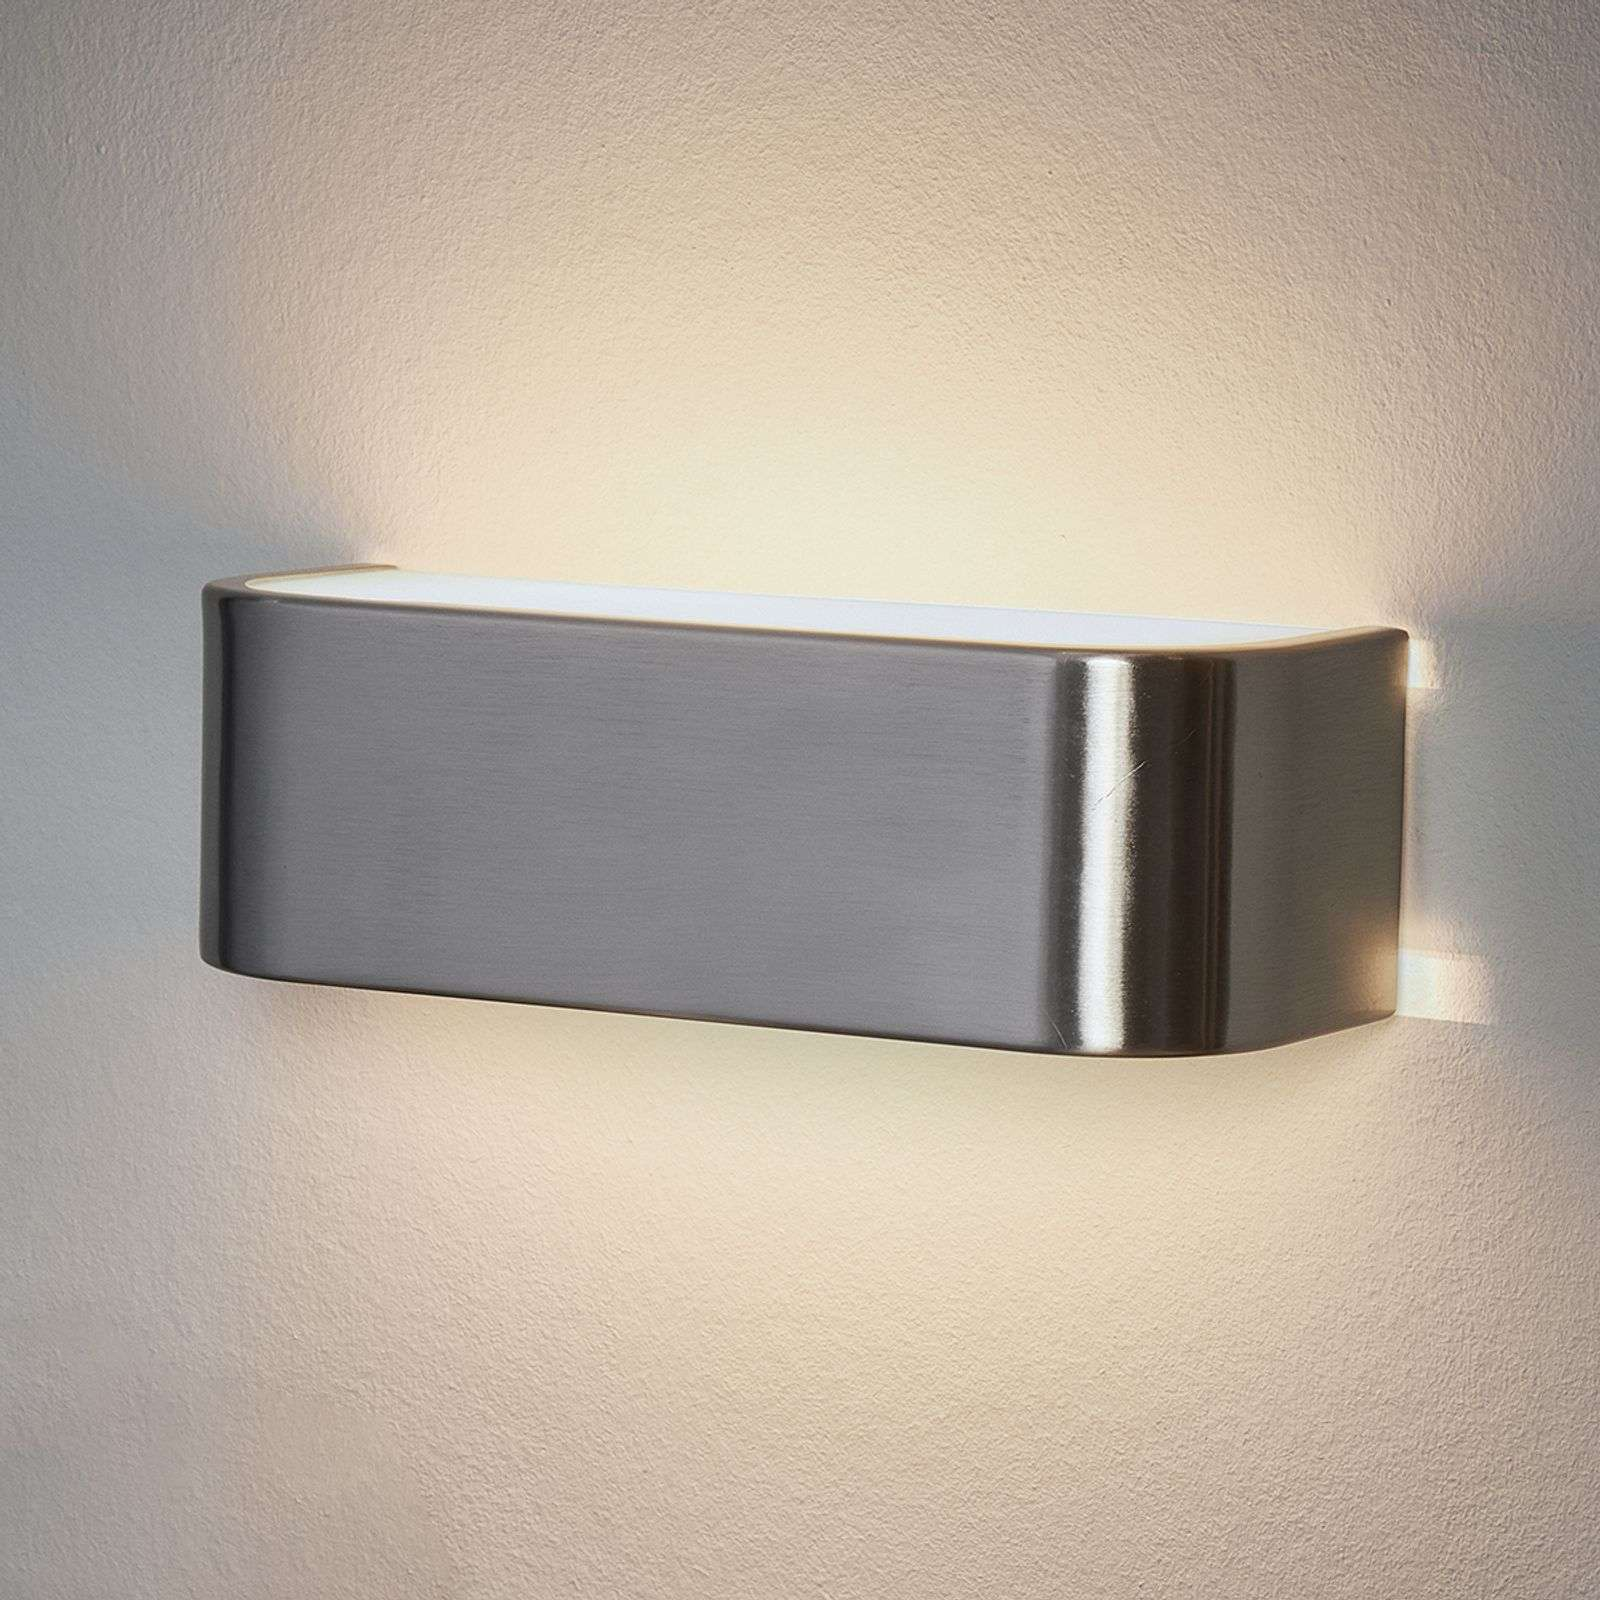 Discrete LED wandlamp Lotti in nikkel